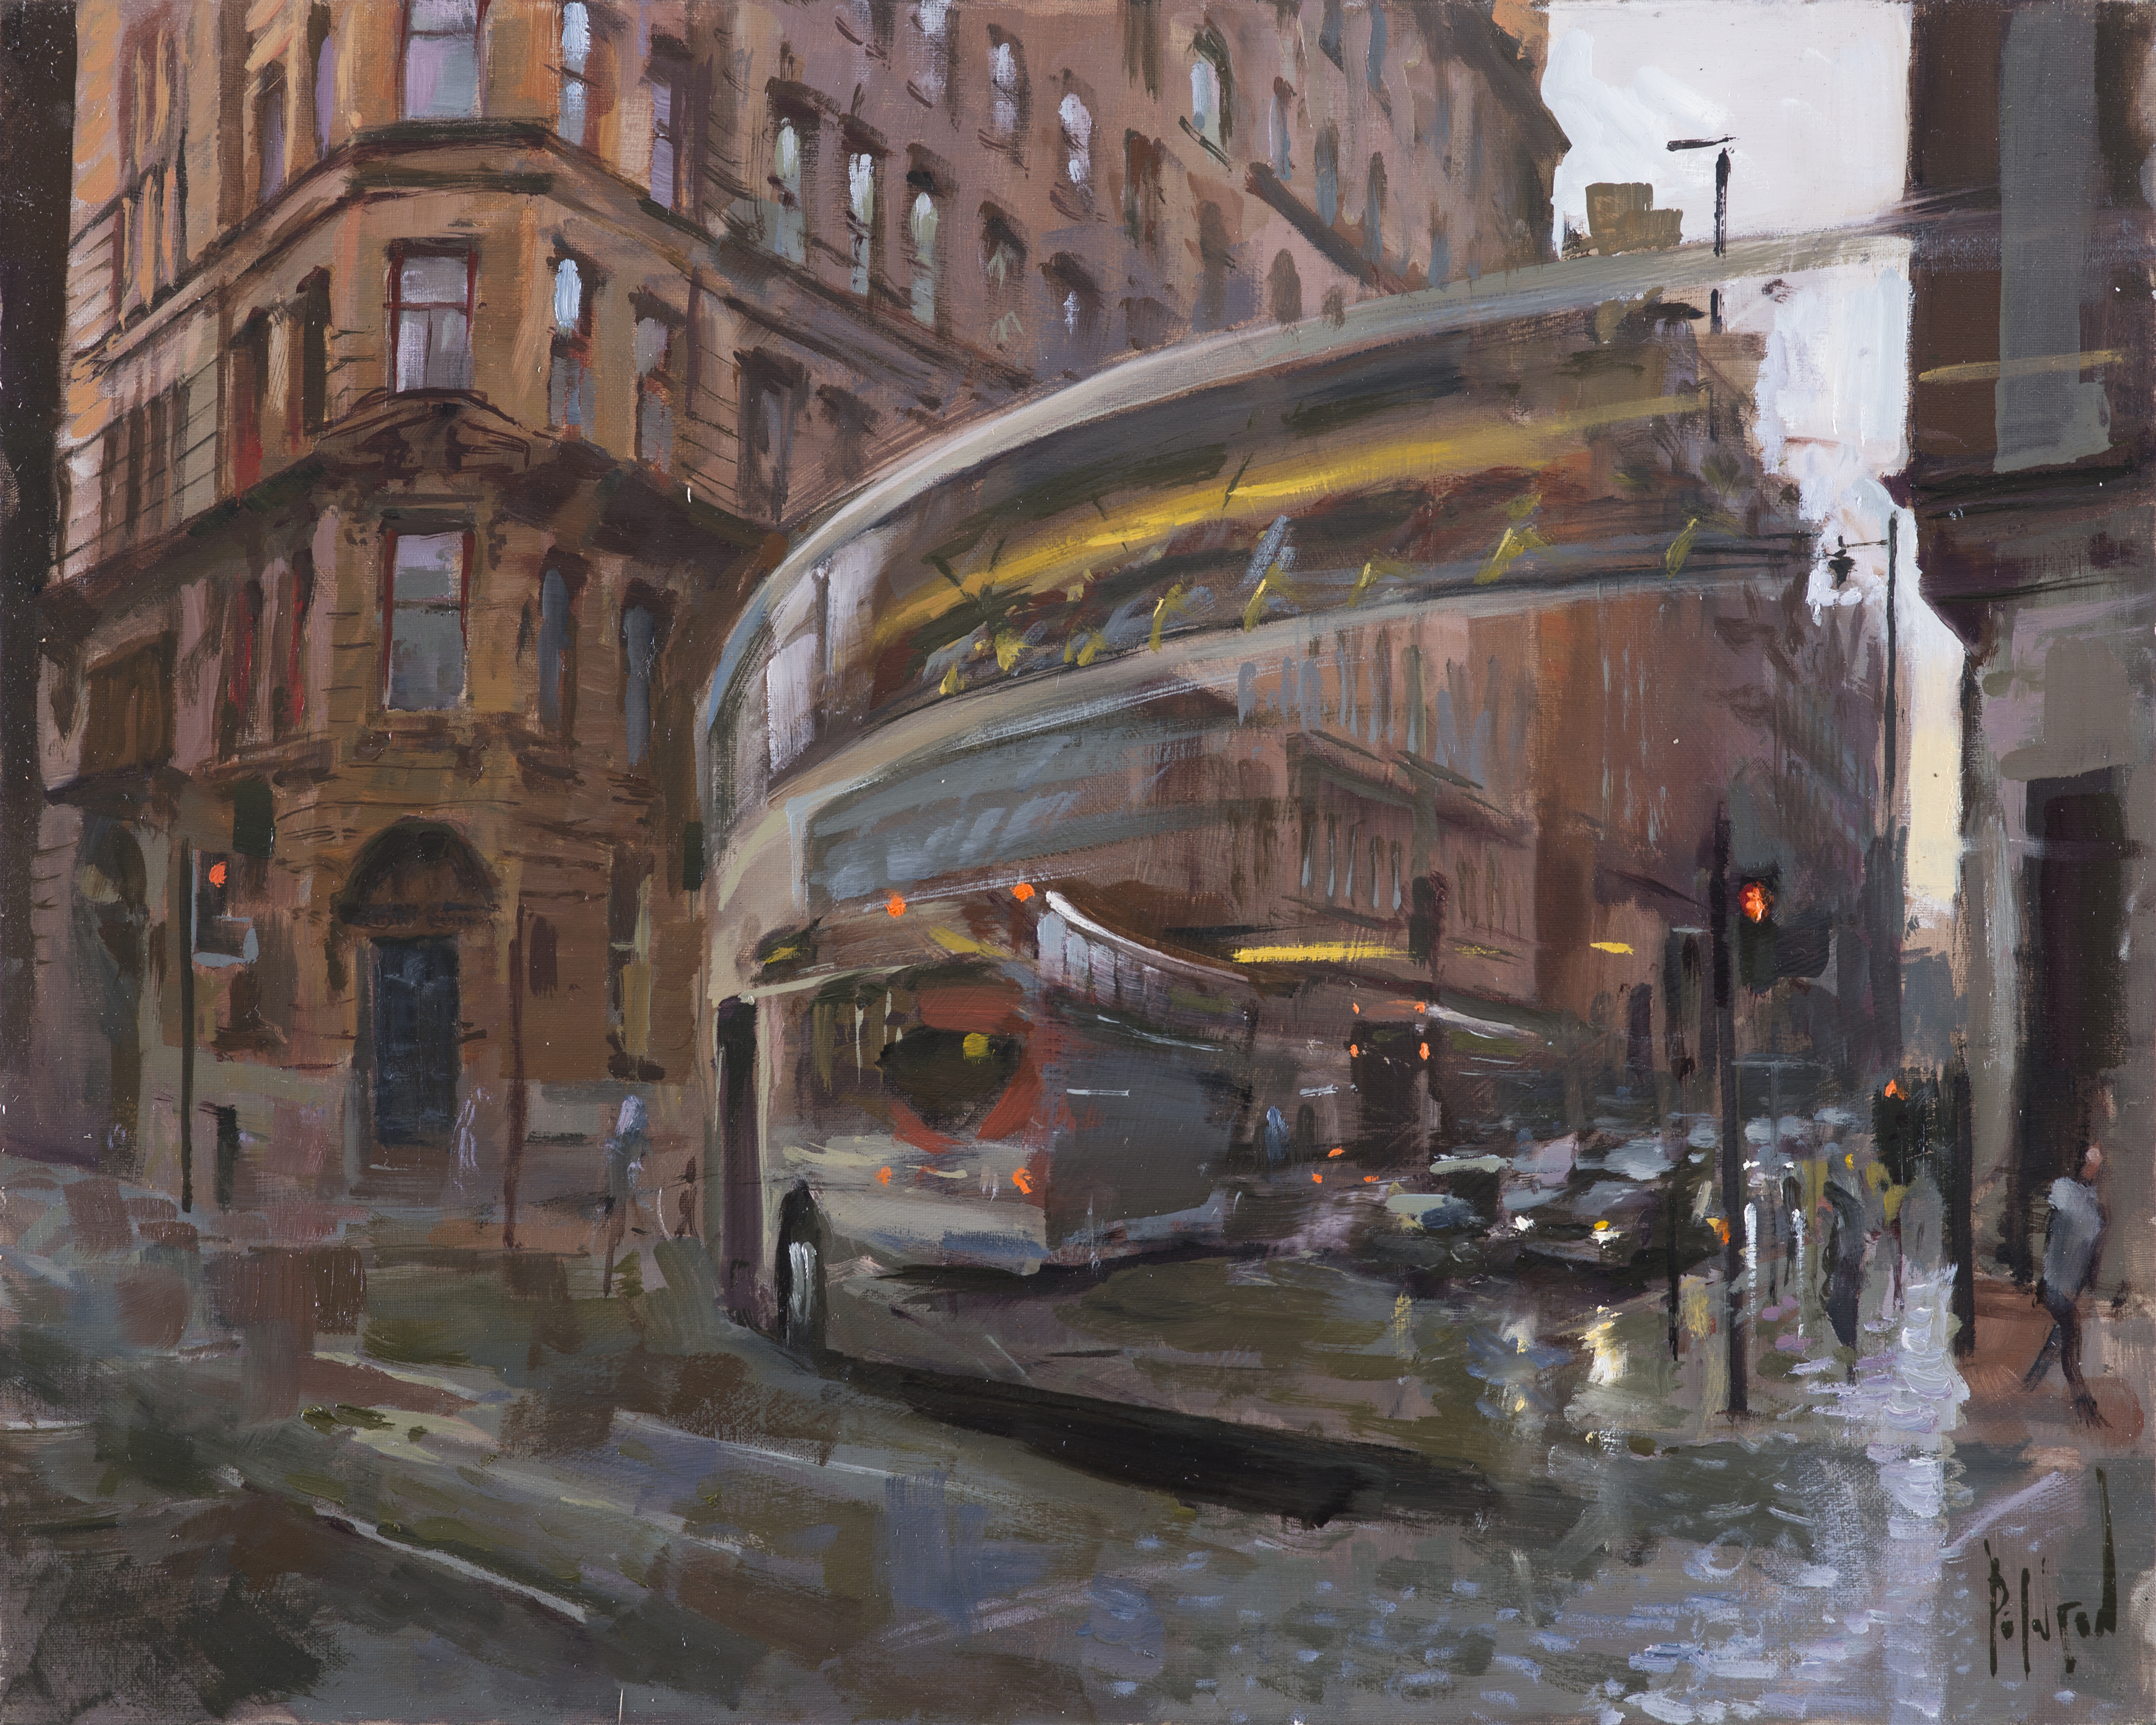 rob pointon Buses Turning, Whitworth Street Oil 20ins x 16ins 1550